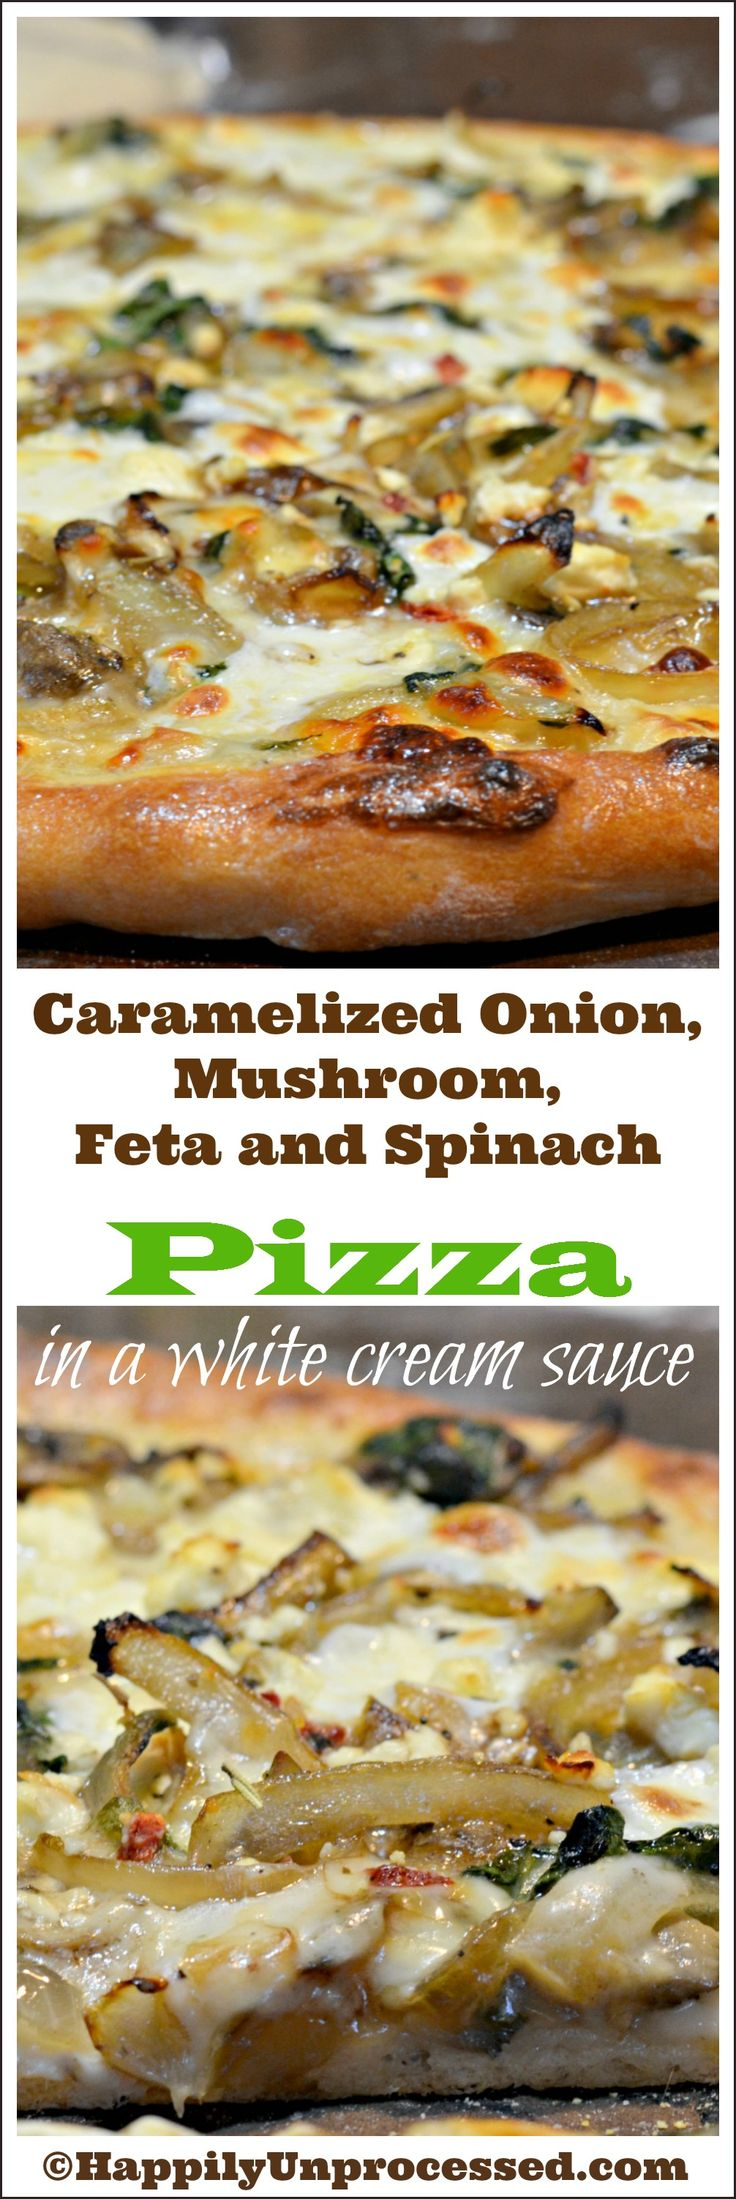 Onions sautéed until brown and caramelized, mushrooms and wilted spinach top this white garlic béchamel sauce with feta and mozzarella cheeses. Perfect!